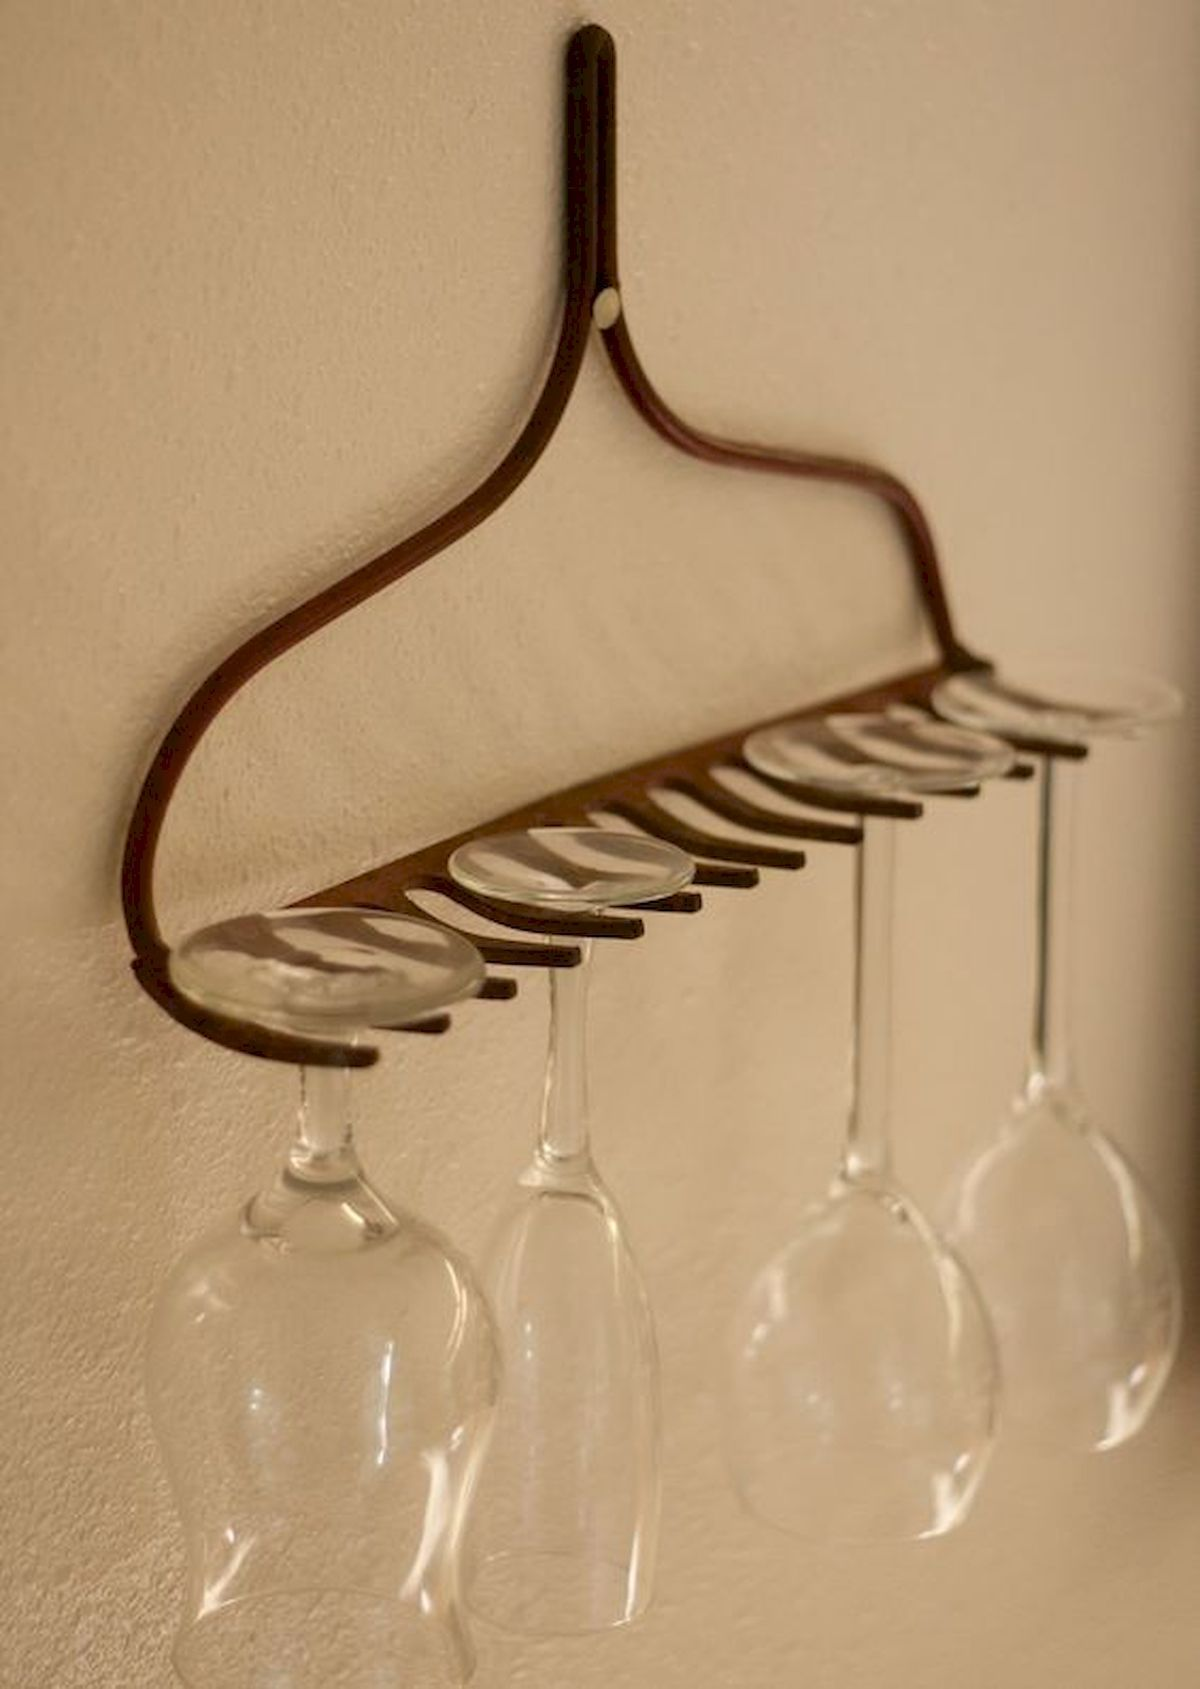 70 Amazing Diy Recycled And Upcycling Projects Ideas